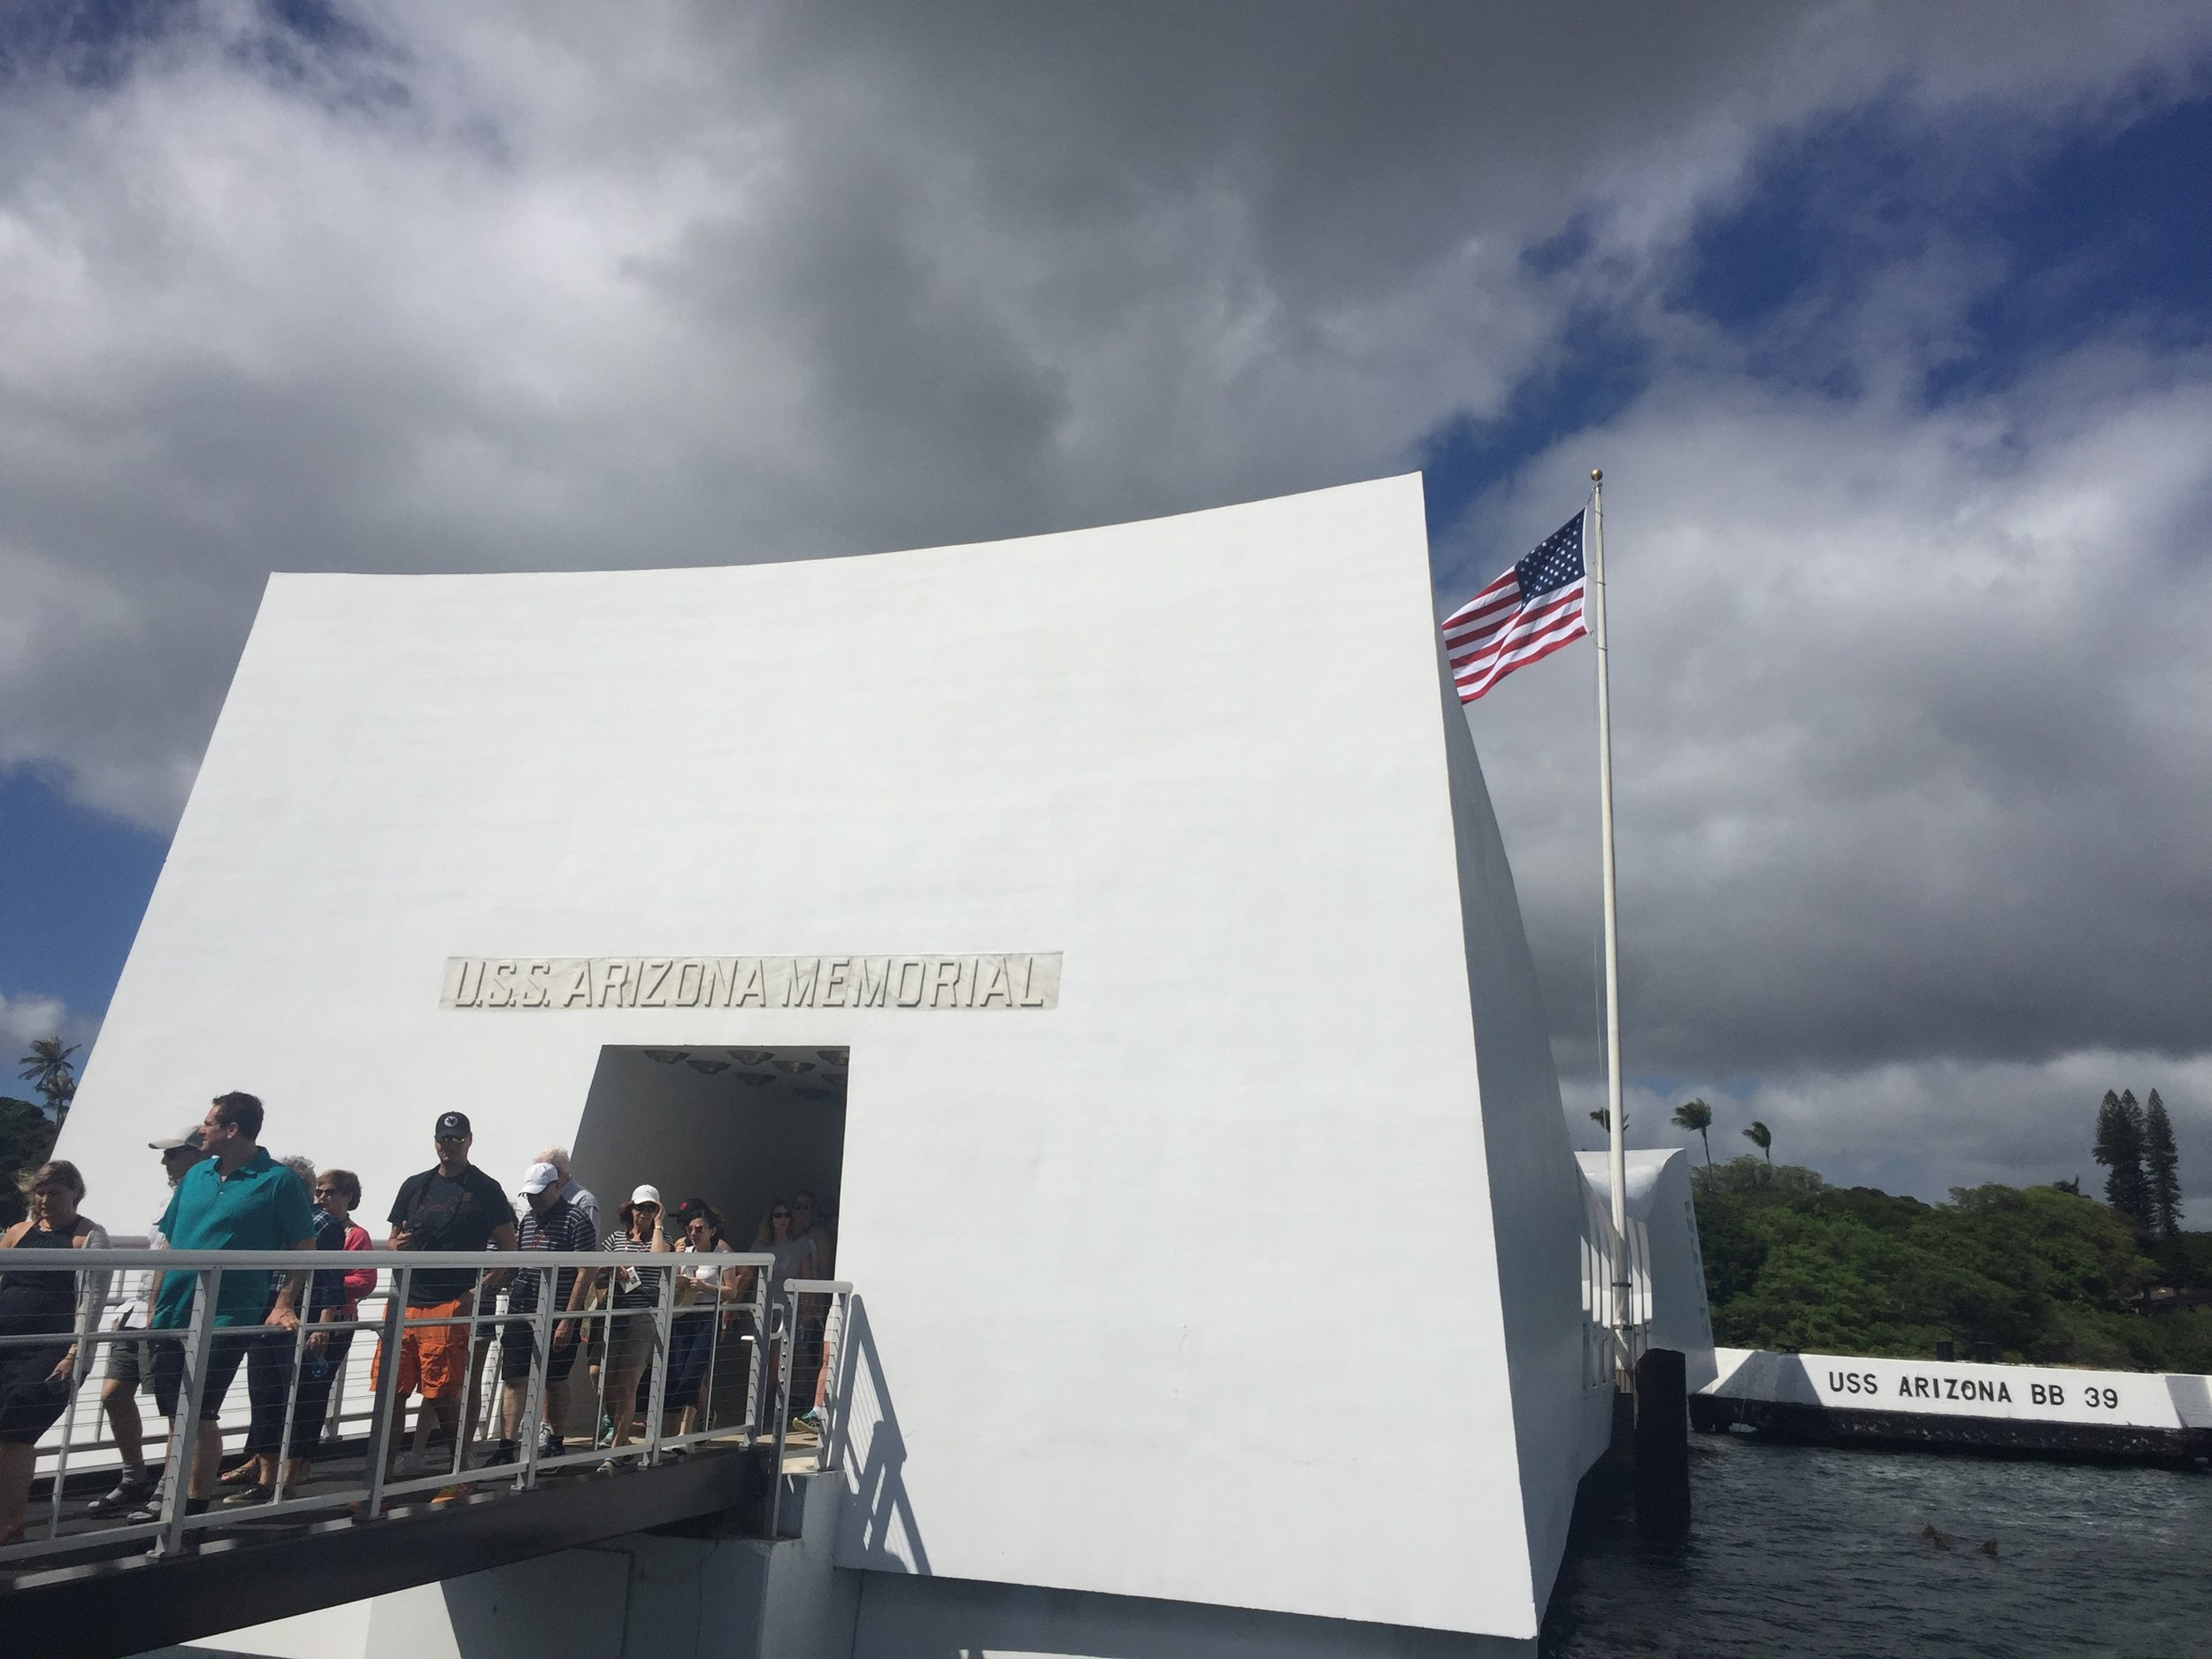 The walkway onto the USS Arizona Memorial.